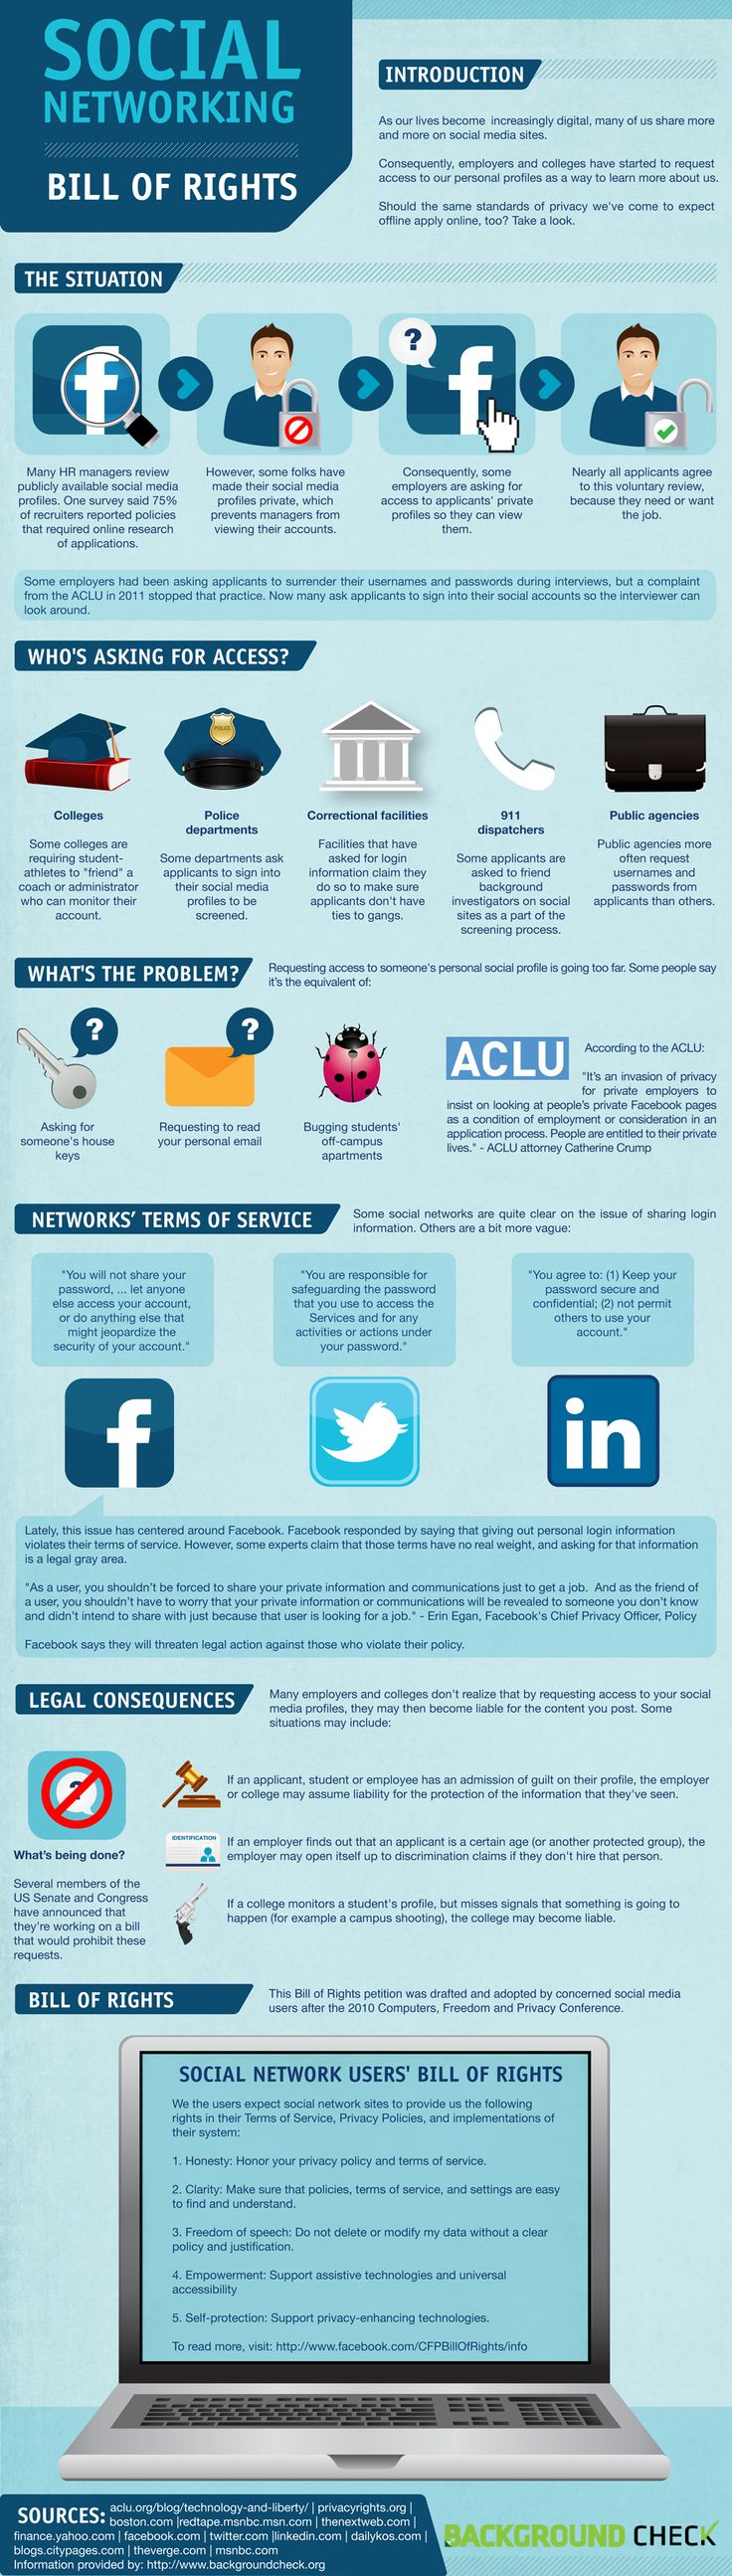 employers and social media profile